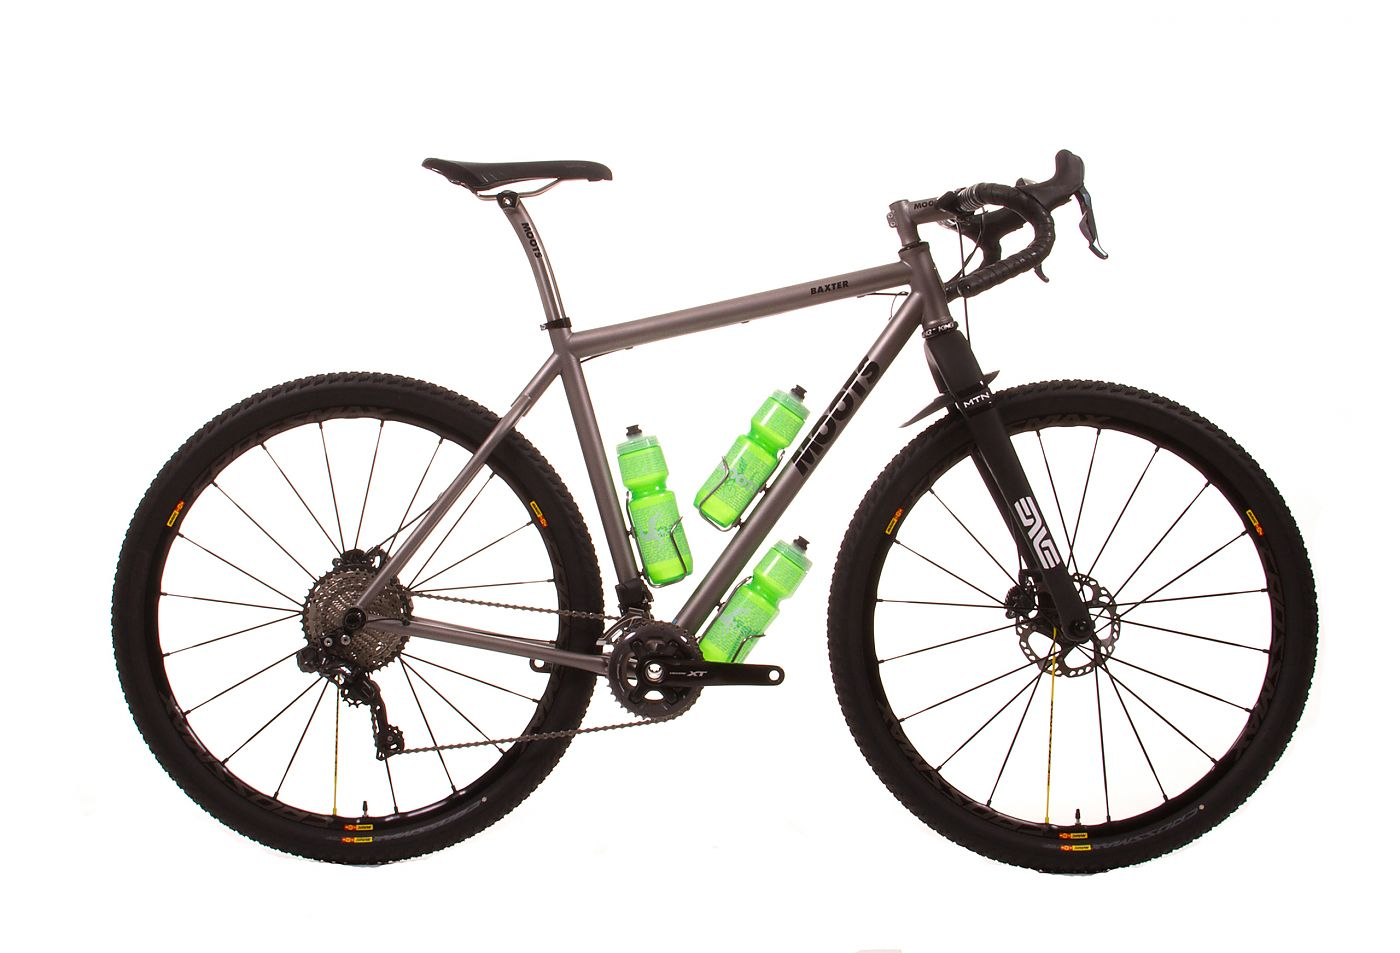 Moots rolls out new ti adventure bike at Eurobike | Bicycle Retailer ...